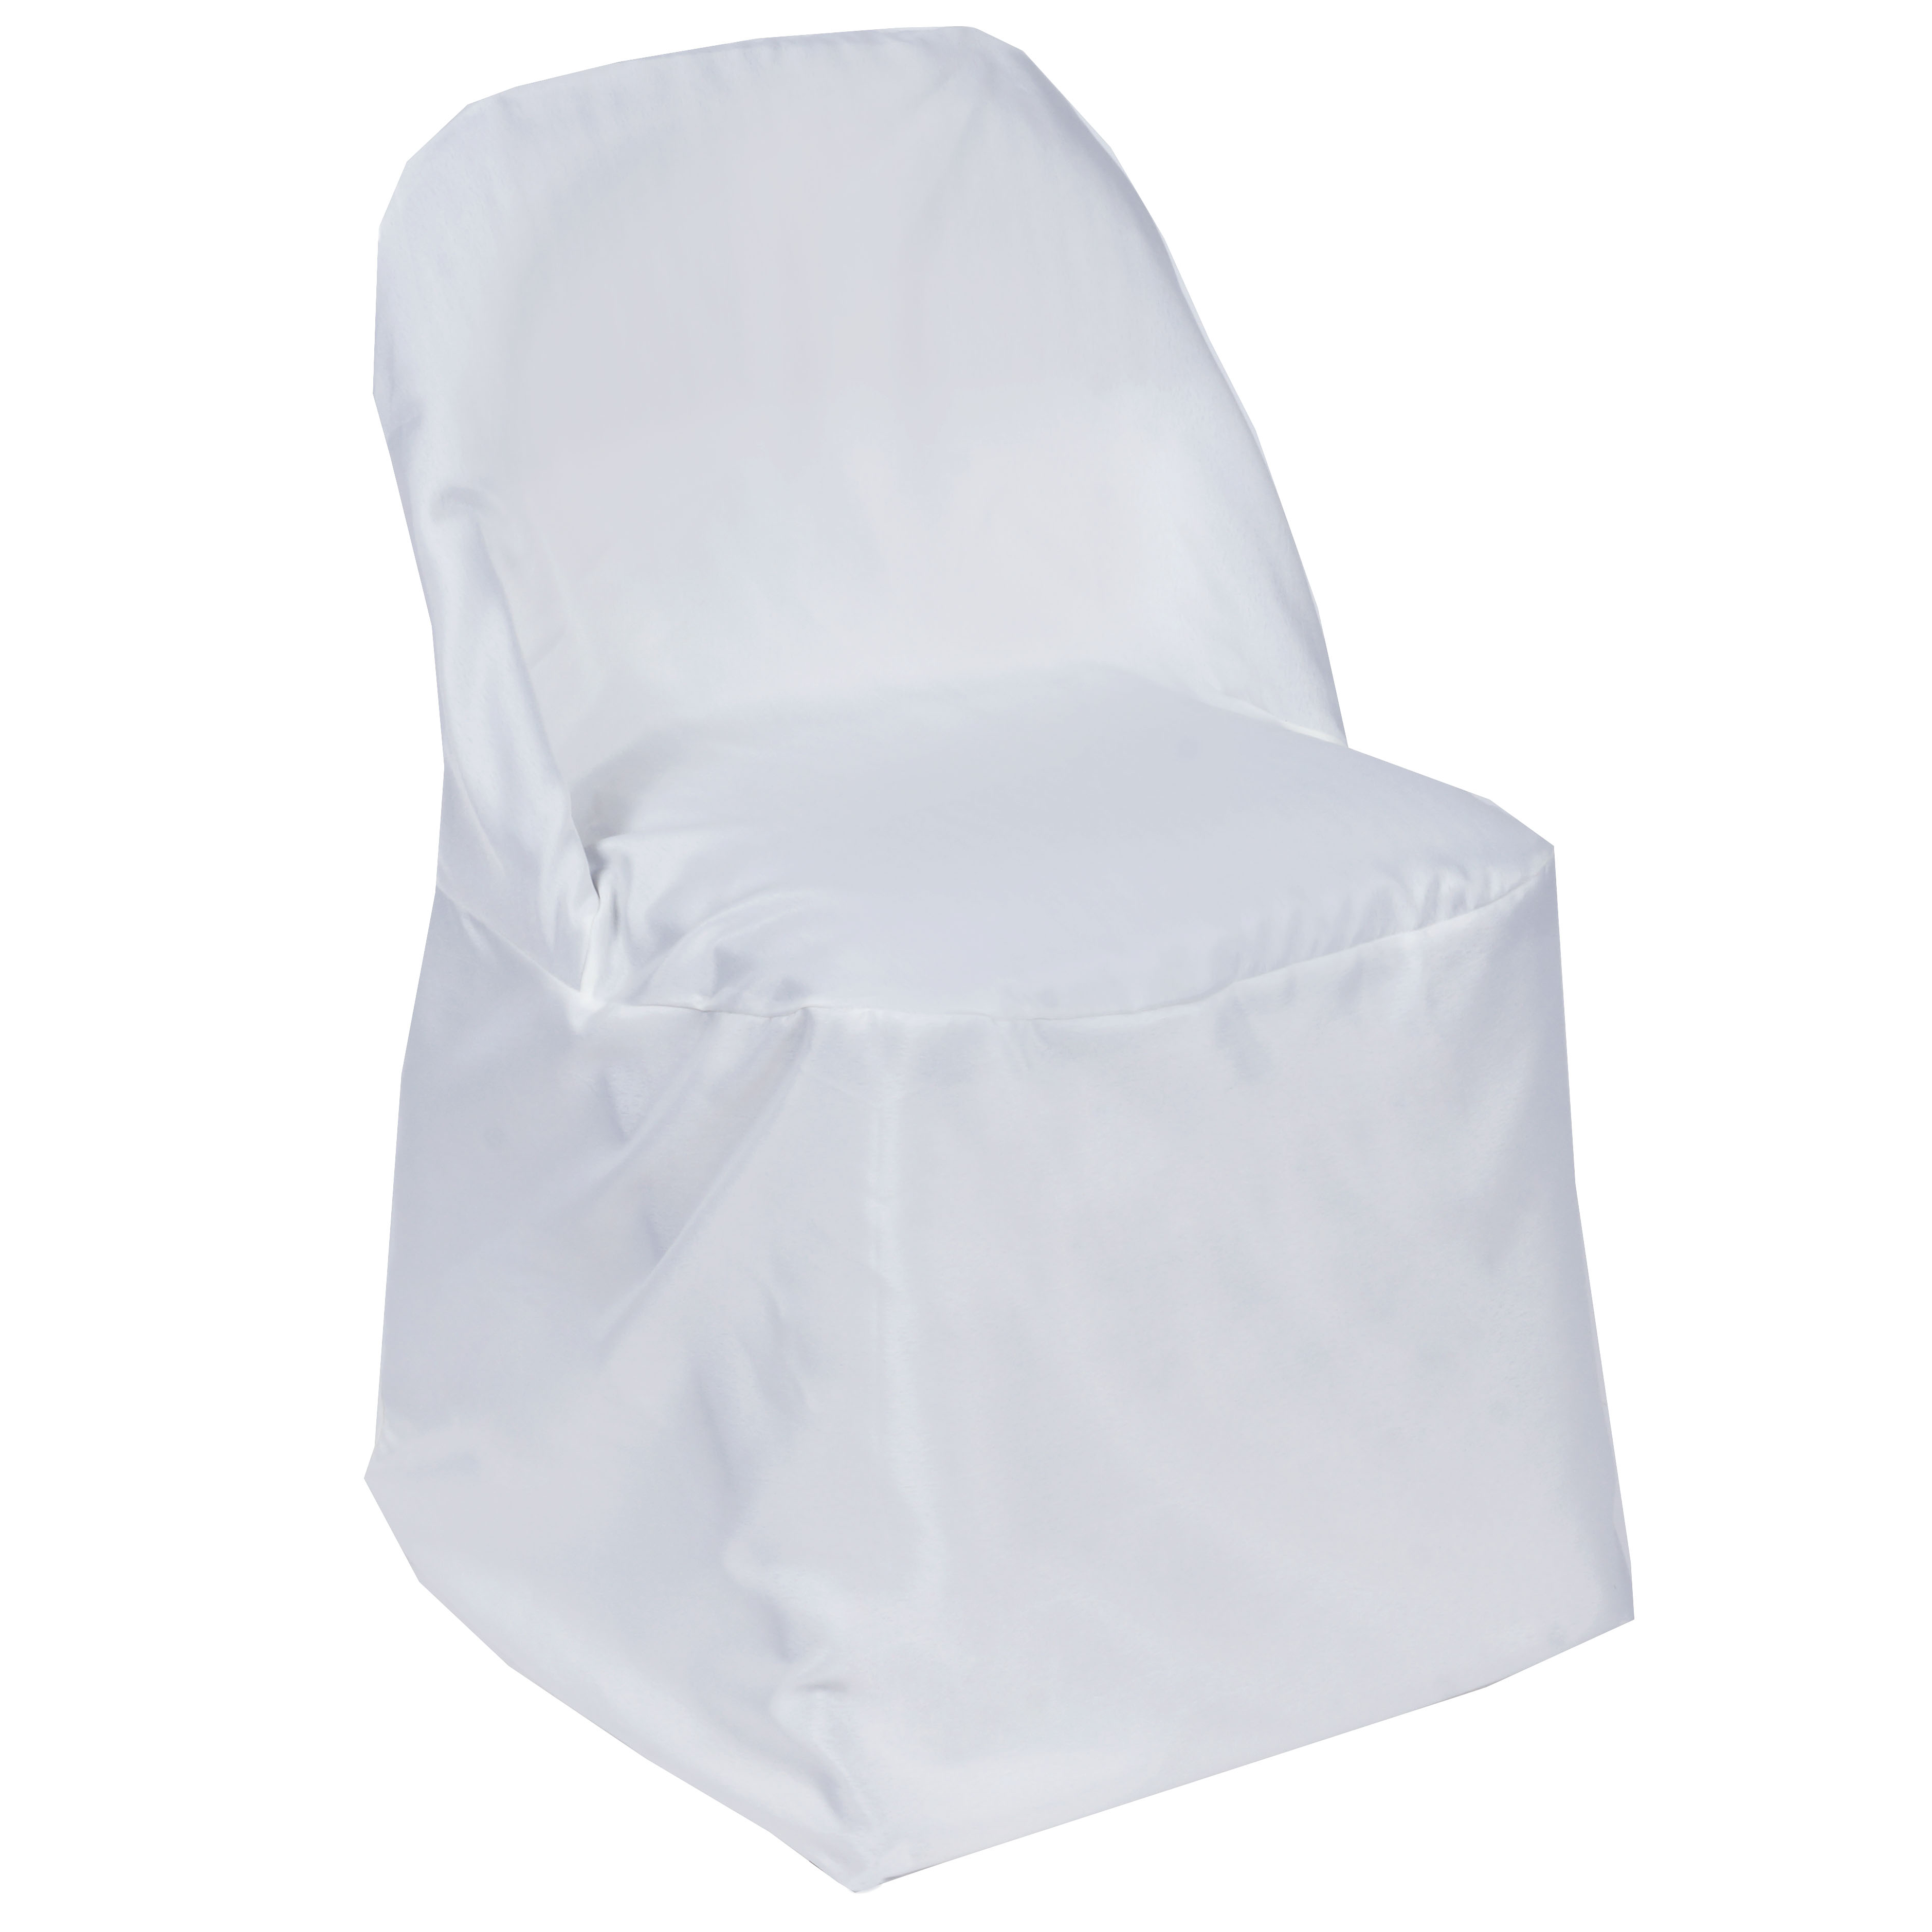 Folding chair covers wholesale under 1 - 1 Folding Round Polyester Fabric Chair Covers Wedding